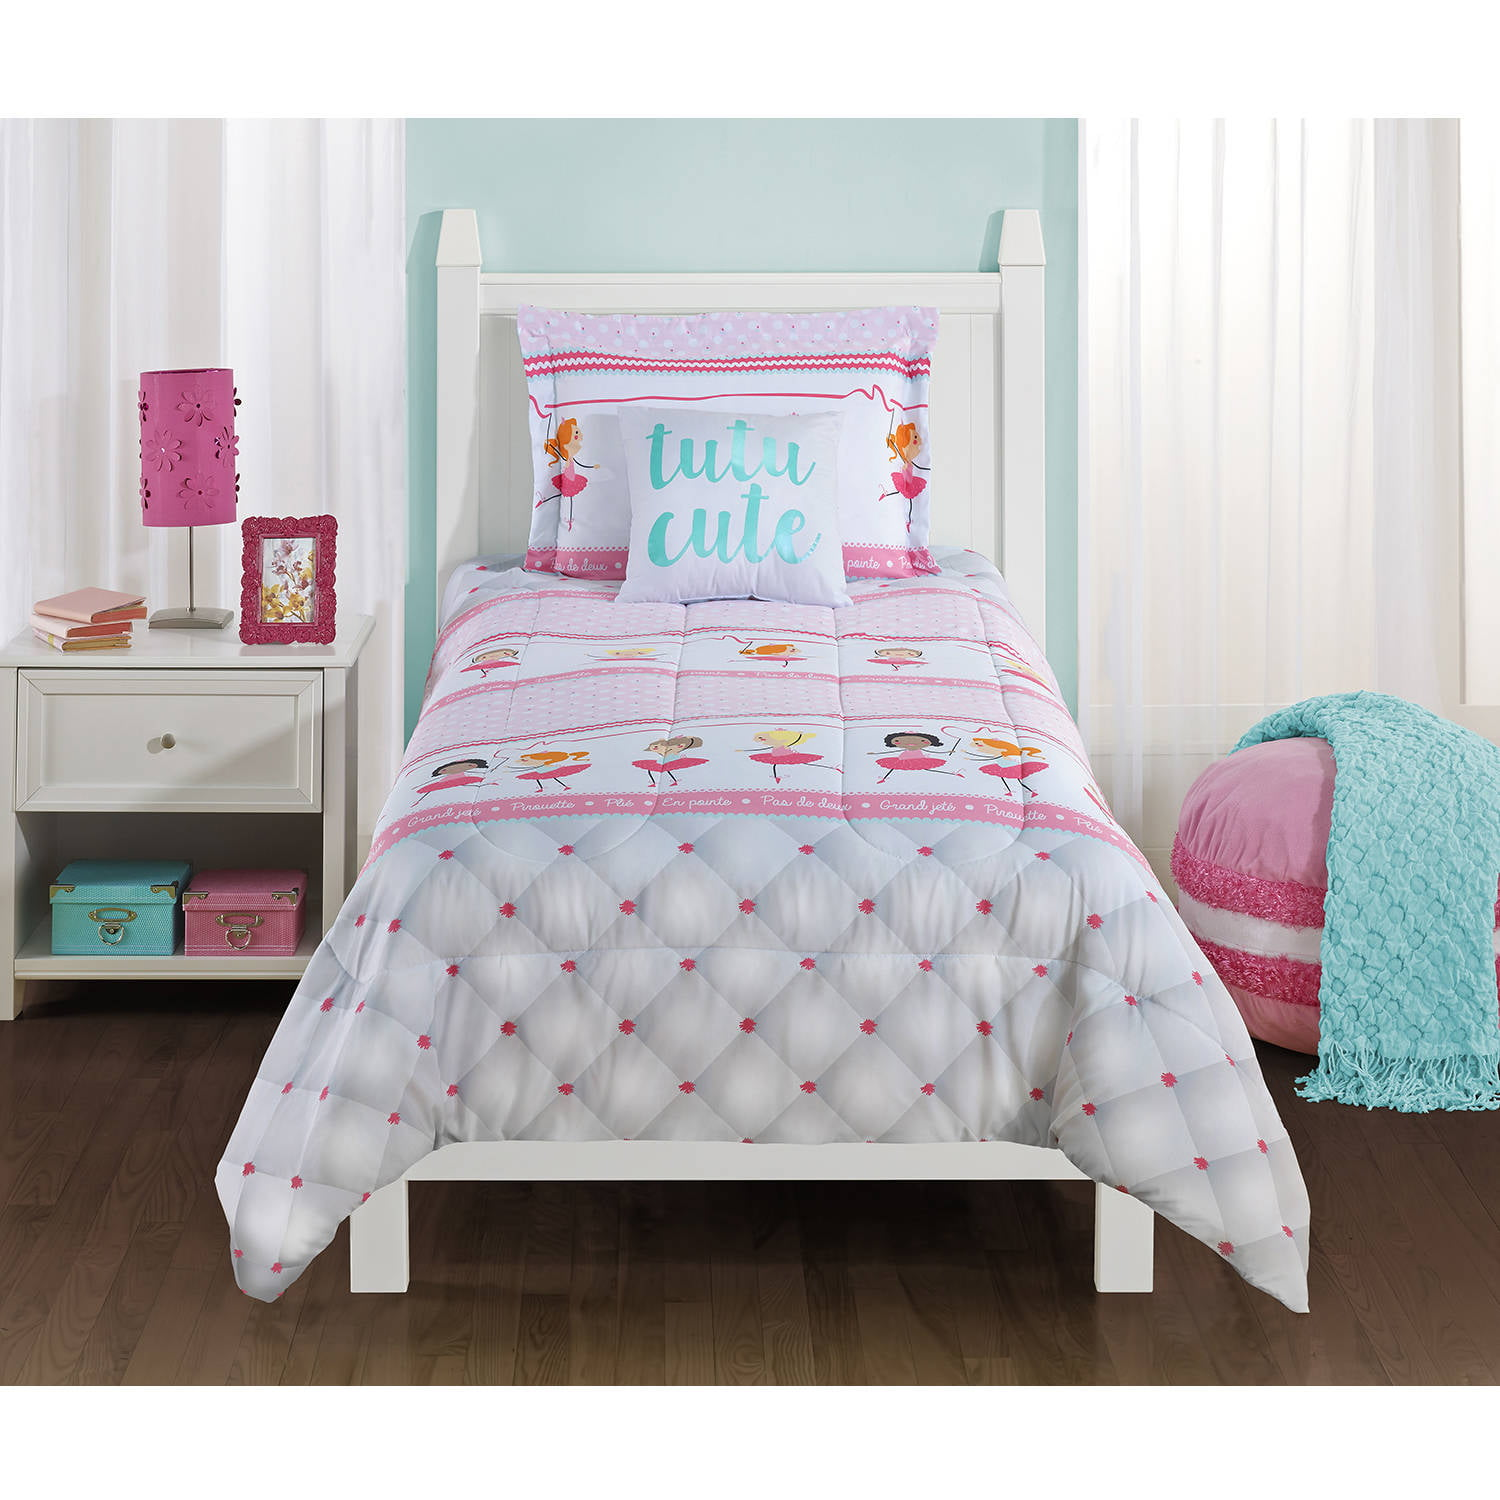 Mainstays Bed Pillows - Walmart.com